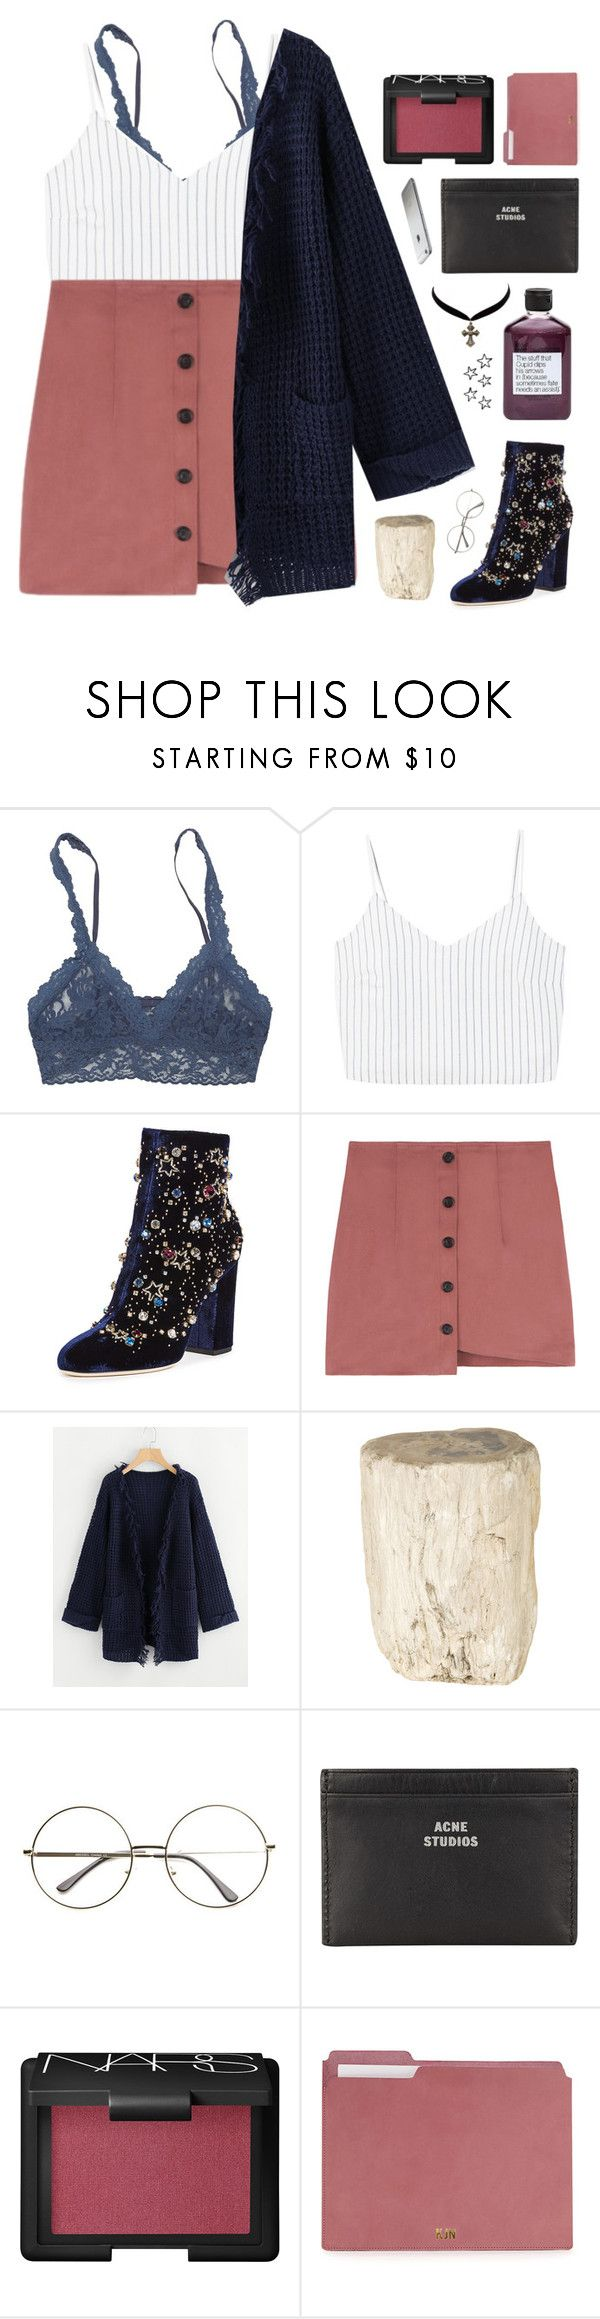 """when you smile i fall apart"" by frostedfingertips ❤ liked on Polyvore featuring Hanky Panky, MANGO, GEDEBE, Not Soap, Radio, Jayson Home, Acne Studios, NARS Cosmetics, Charlotte Russe, haileelook and clarelook"